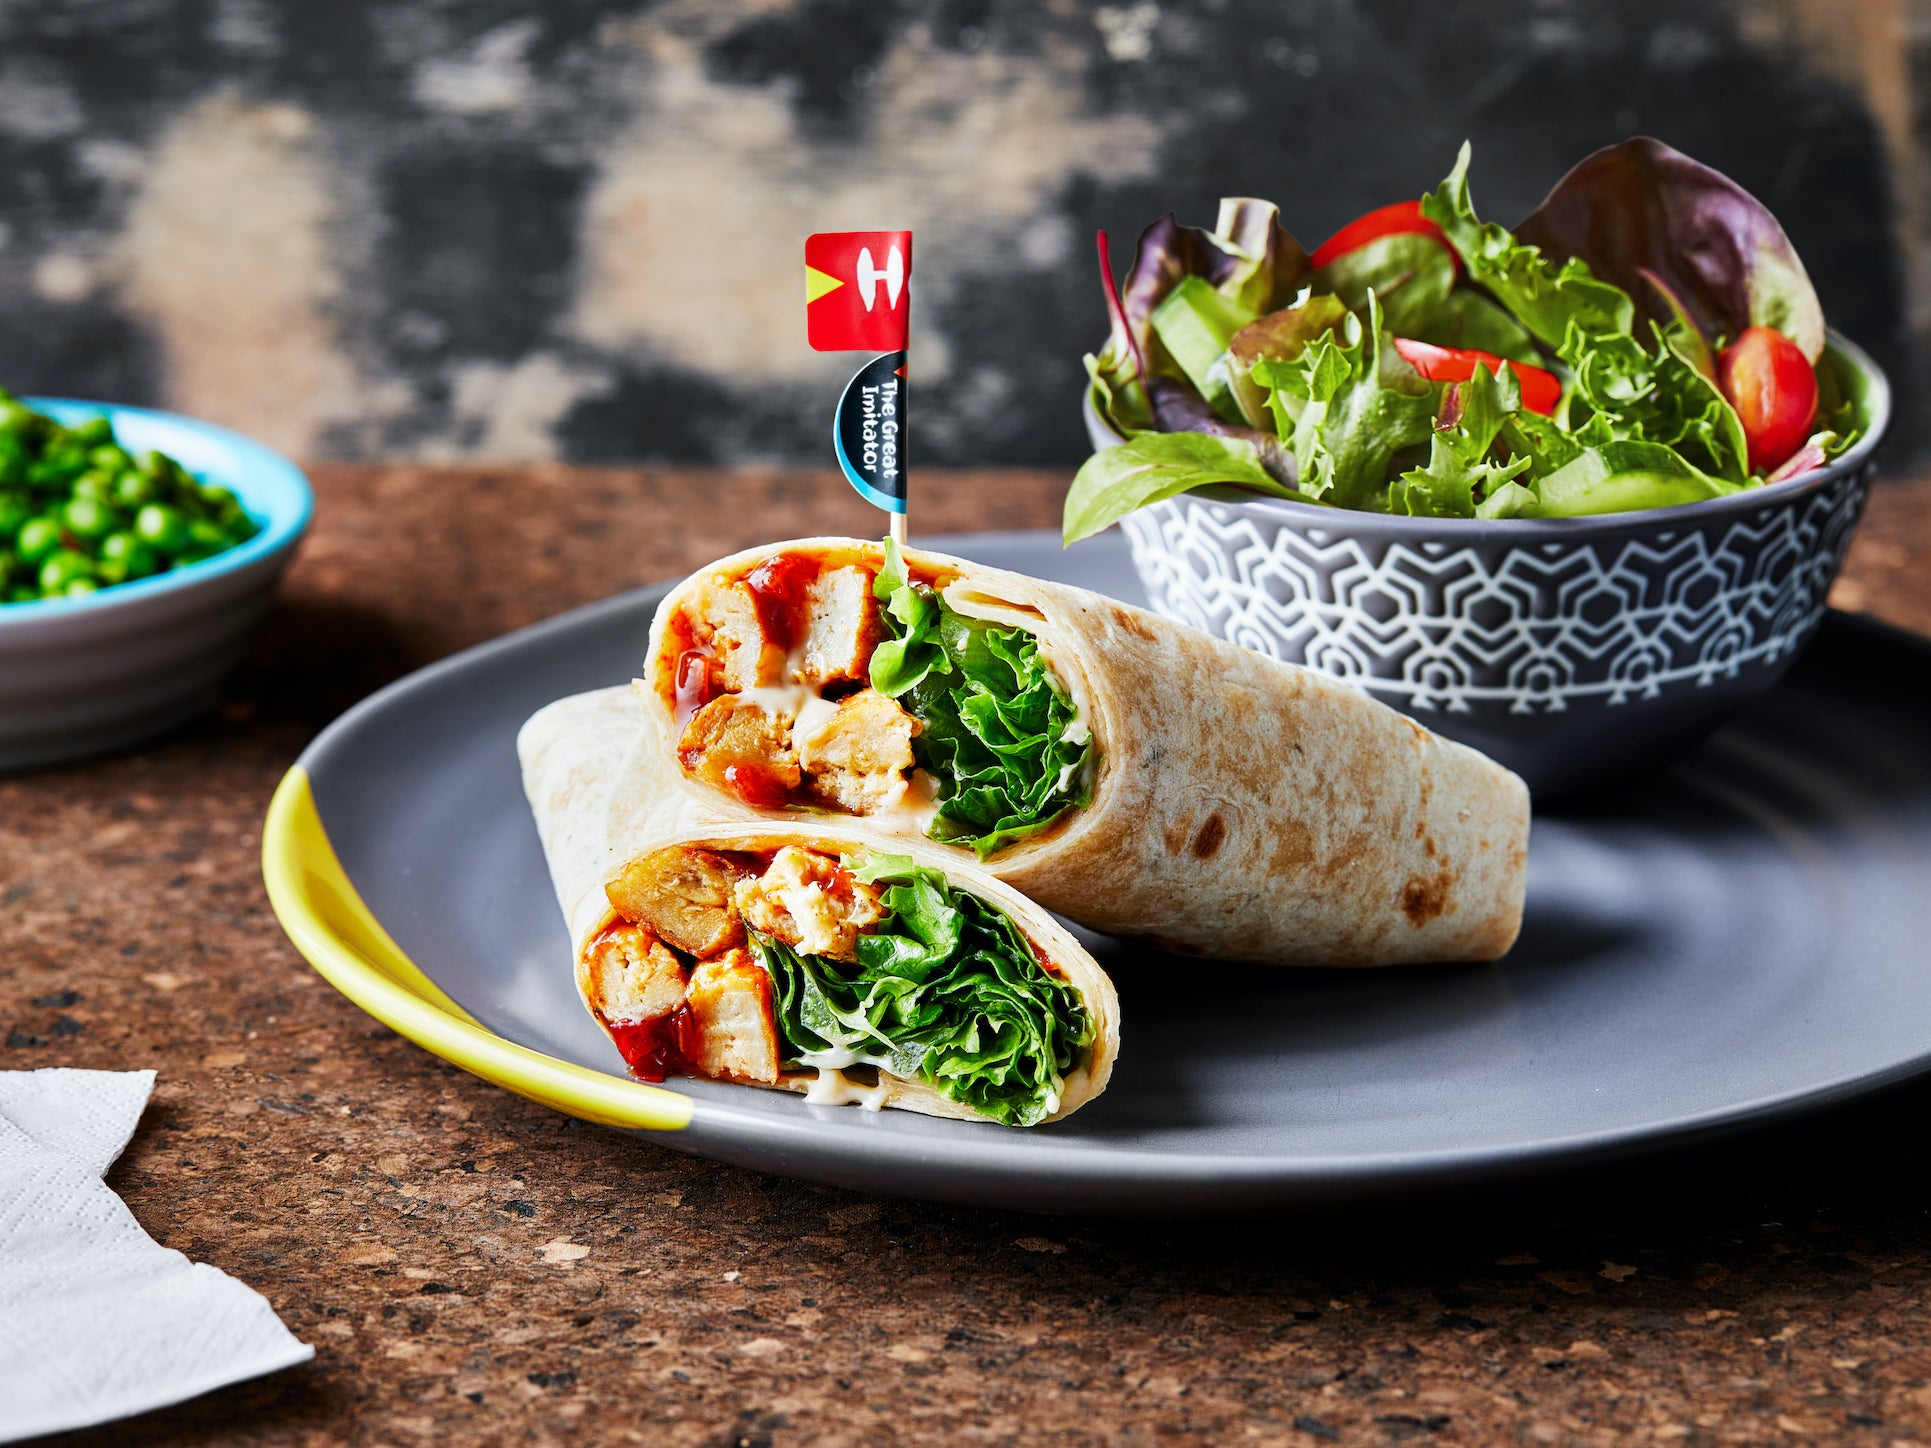 Nando's is launching plant-based 'chicken'